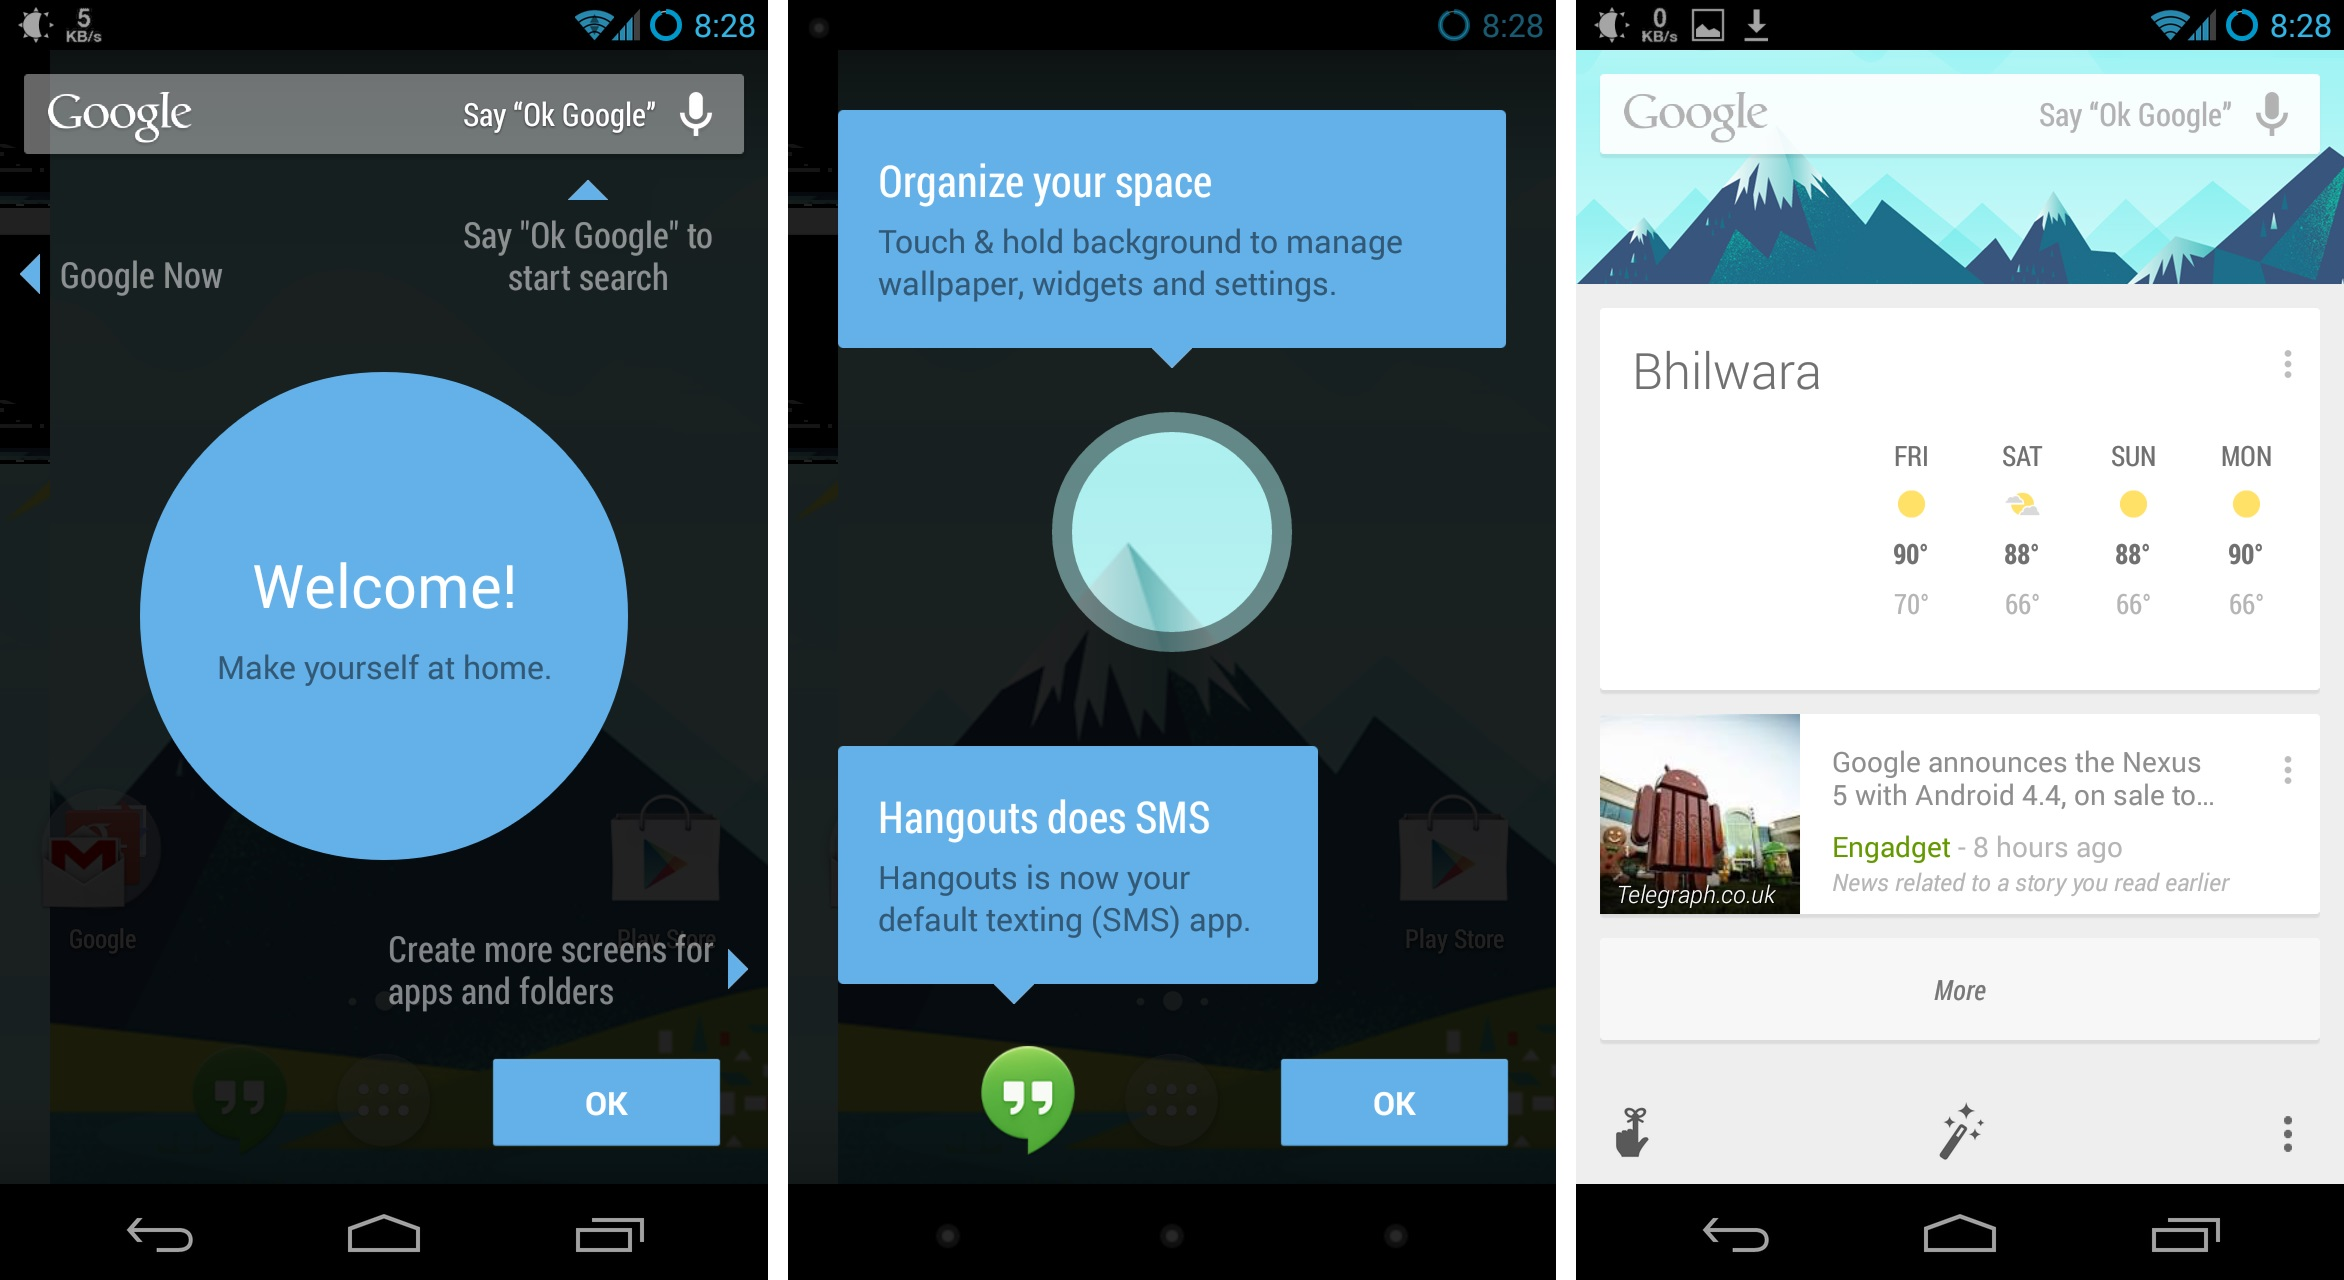 New-Google-Home-Android-4.4-Launcher